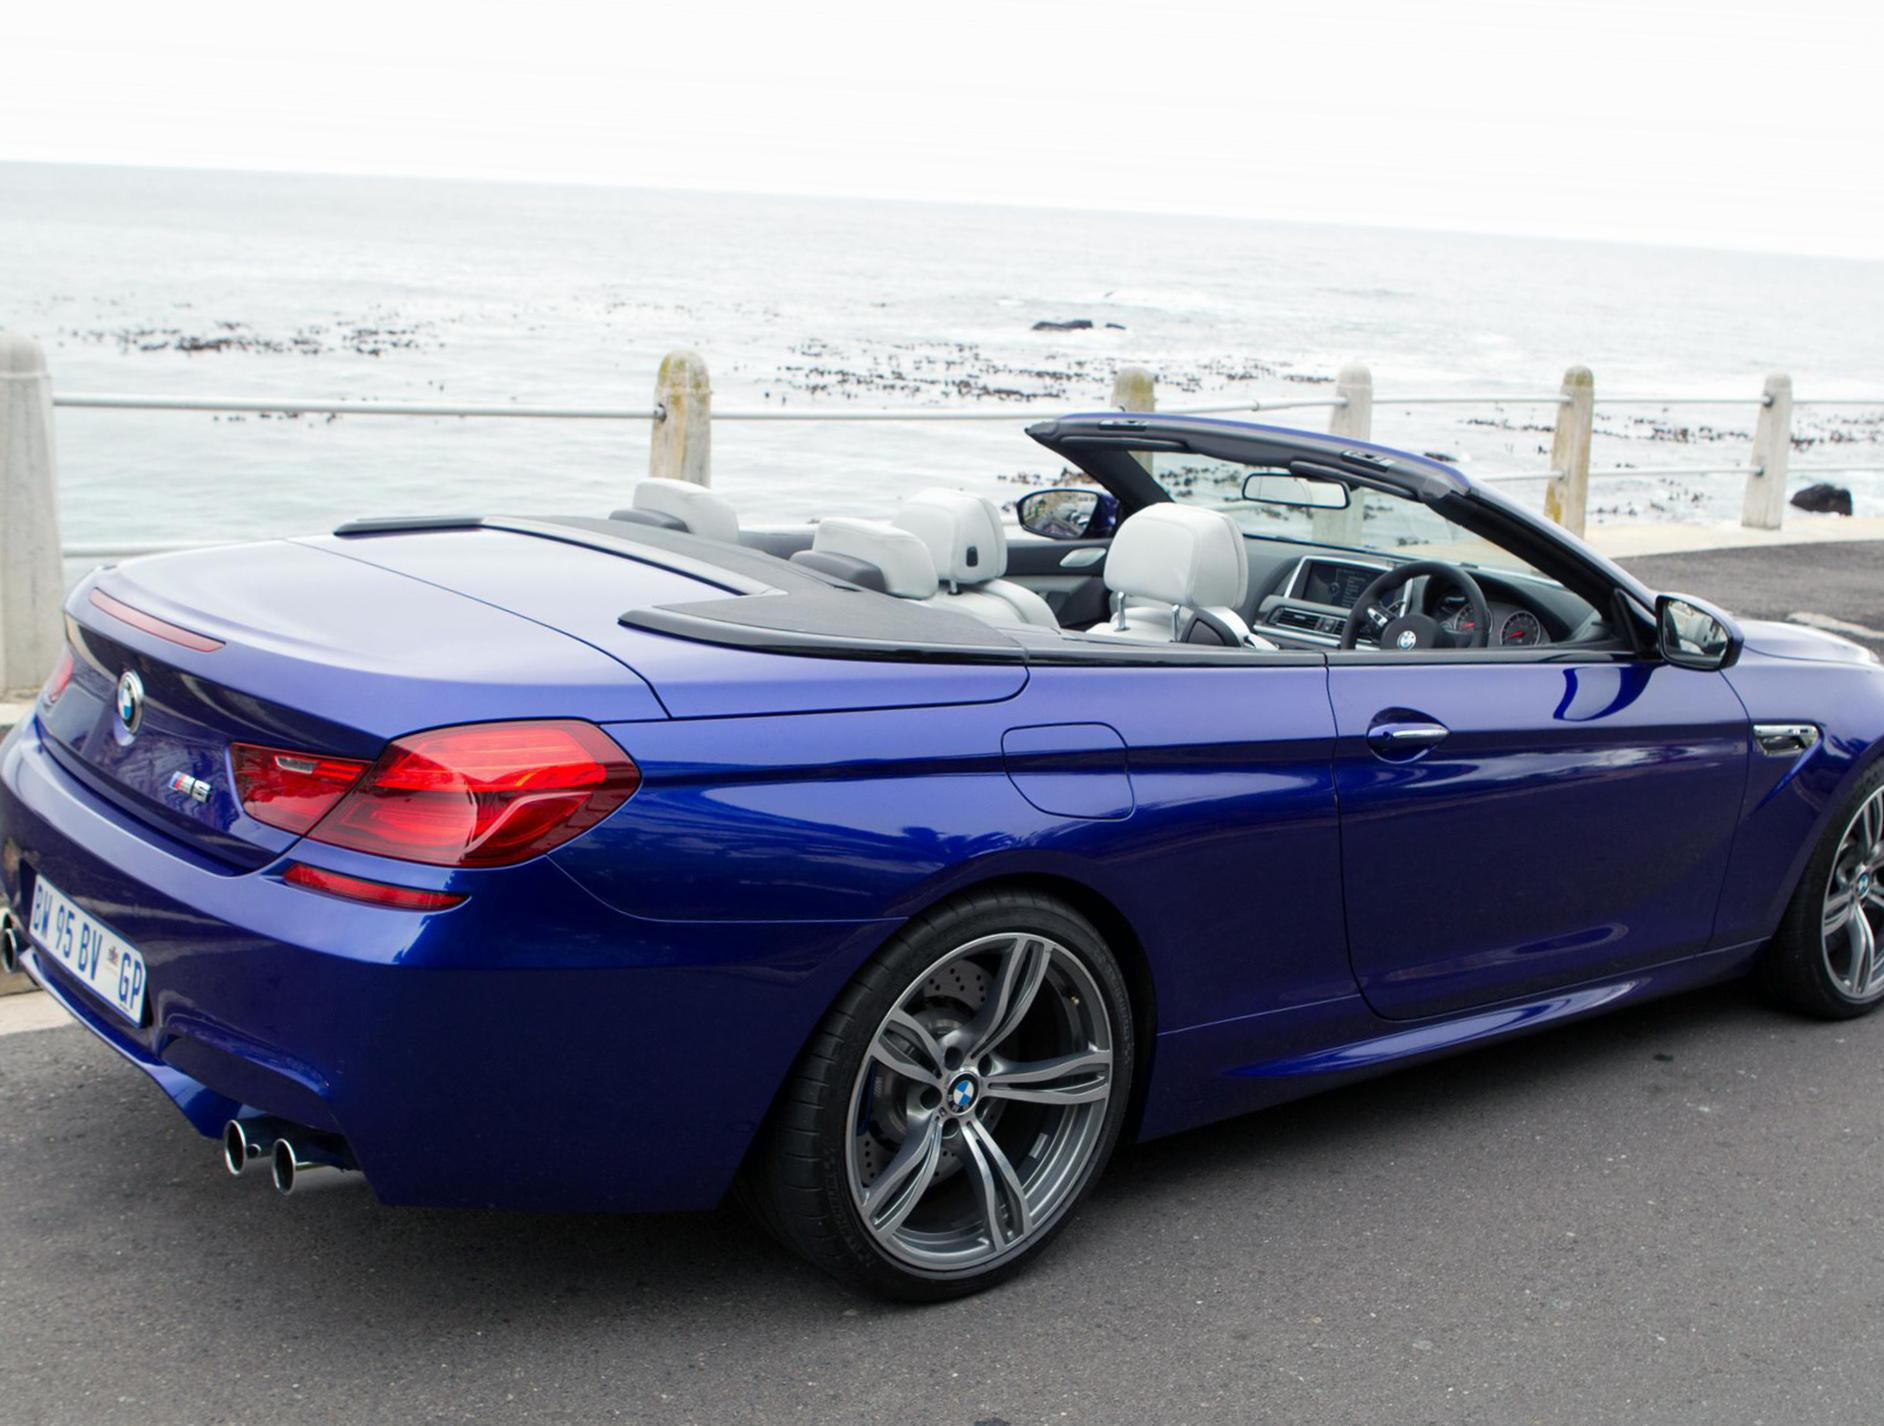 Bmw M6 Cabrio F12 Photos And Specs Photo Bmw M6 Cabrio F12 Tuning And 26 Perfect Photos Of Bmw M6 Cabrio F12